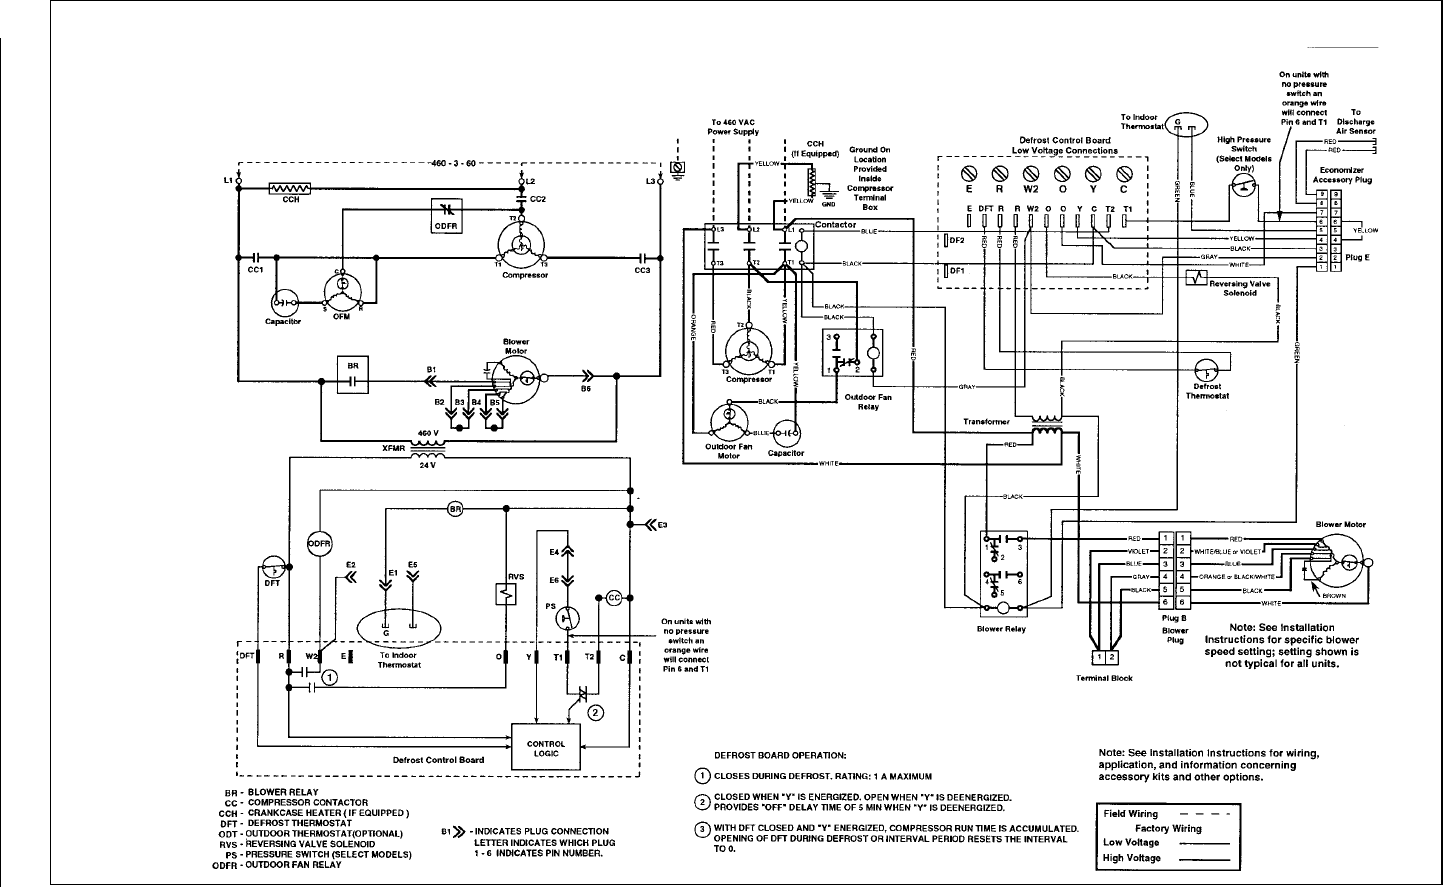 12ef14e5 f0fc 4598 8d26 d64902da494b bg12 wiring diagram for coleman furnace the wiring diagram nordyne heat pump wiring diagram at mifinder.co